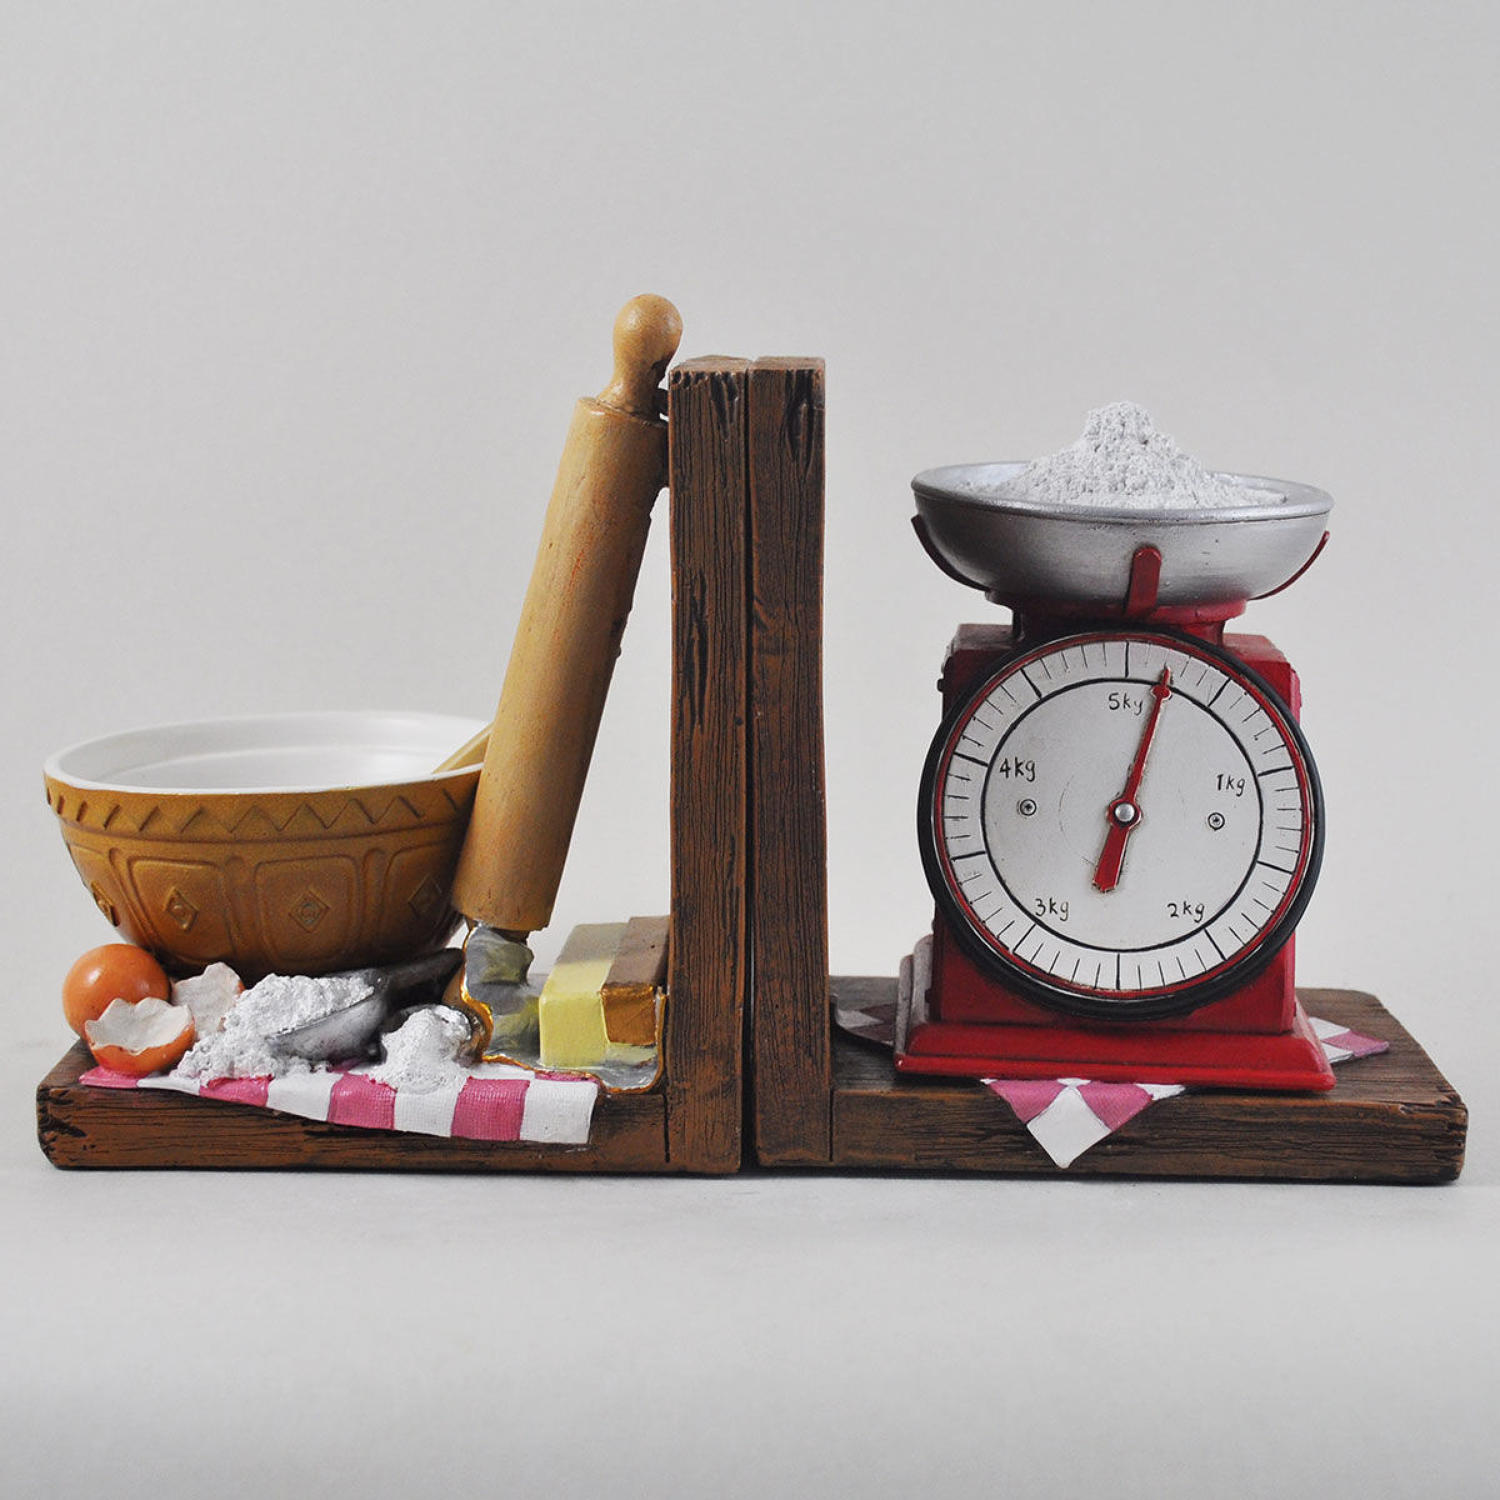 Baking scales shelf tidy bookends